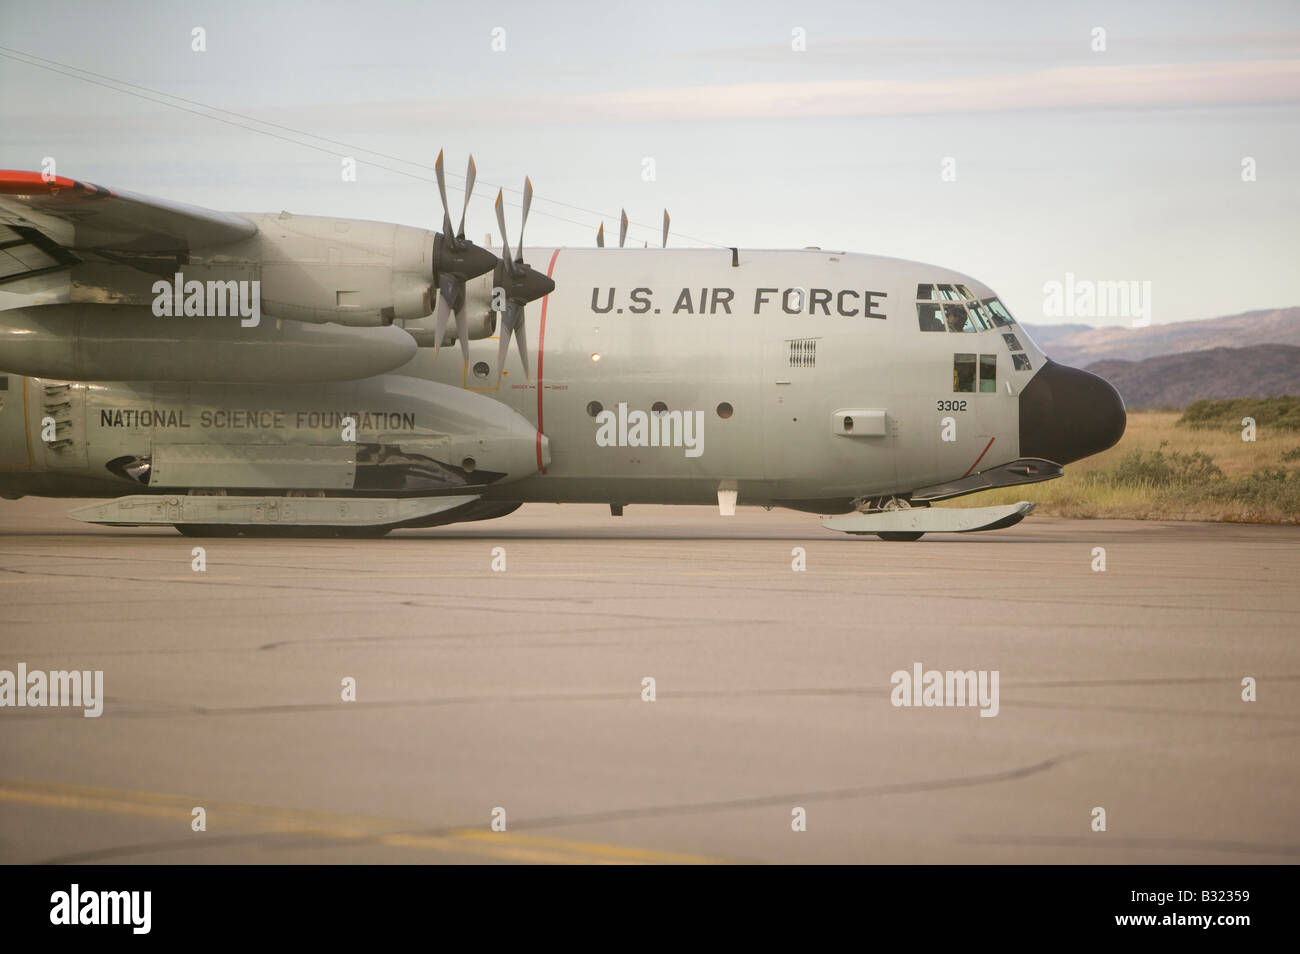 An American Air Force flight at Kangerlussuaq Airport on Greenland after a resupply flight to the ice sheet summit - Stock Image